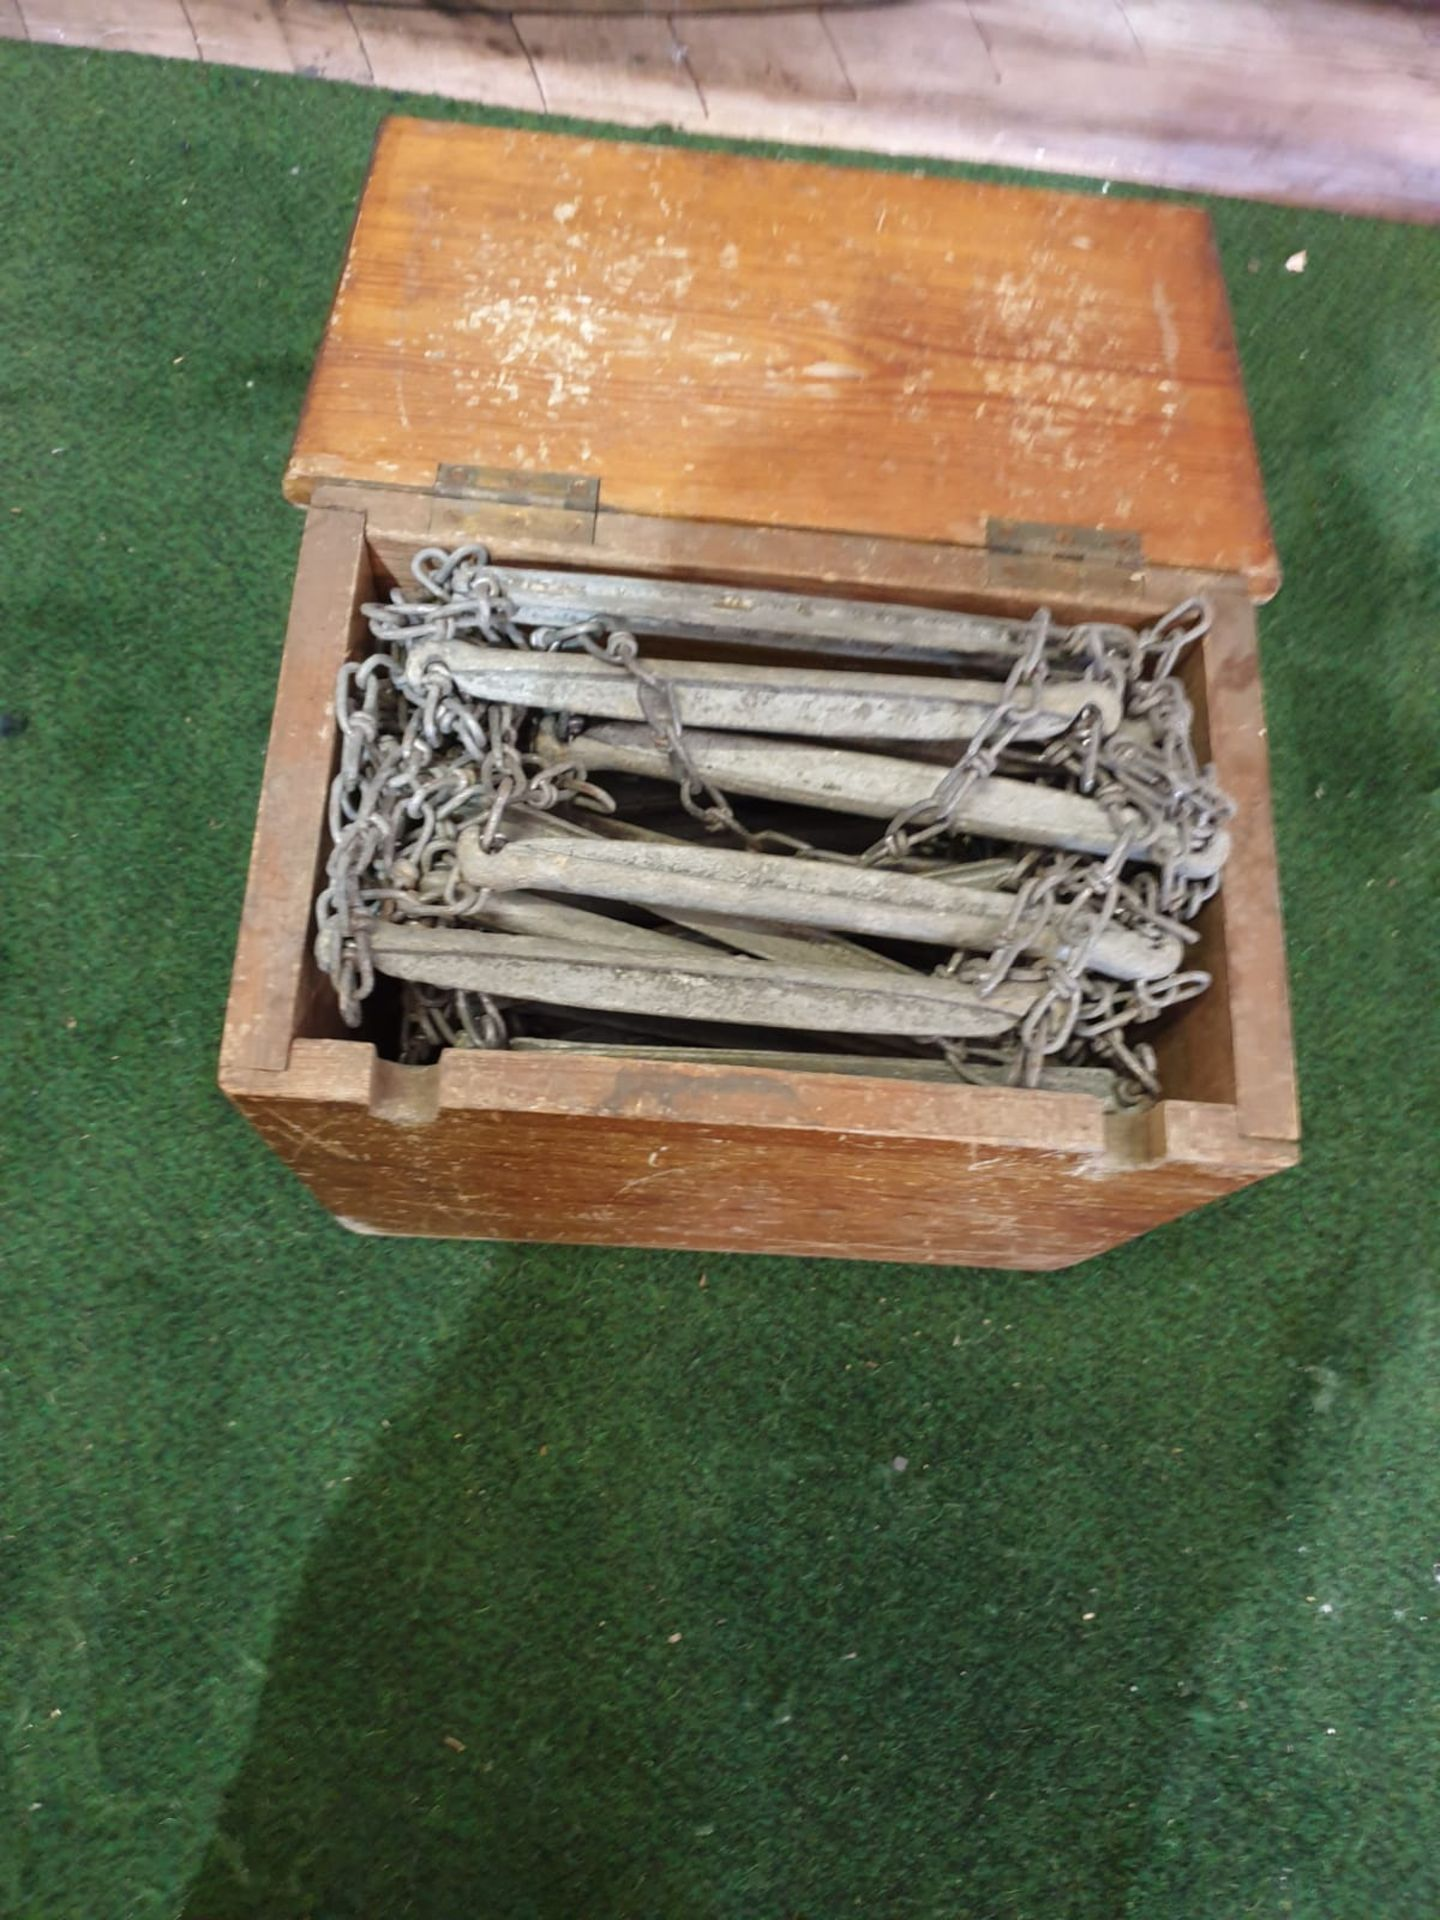 A vintage escape ladder in box 38 rungs of metal on linked chain approximately 10m in length in